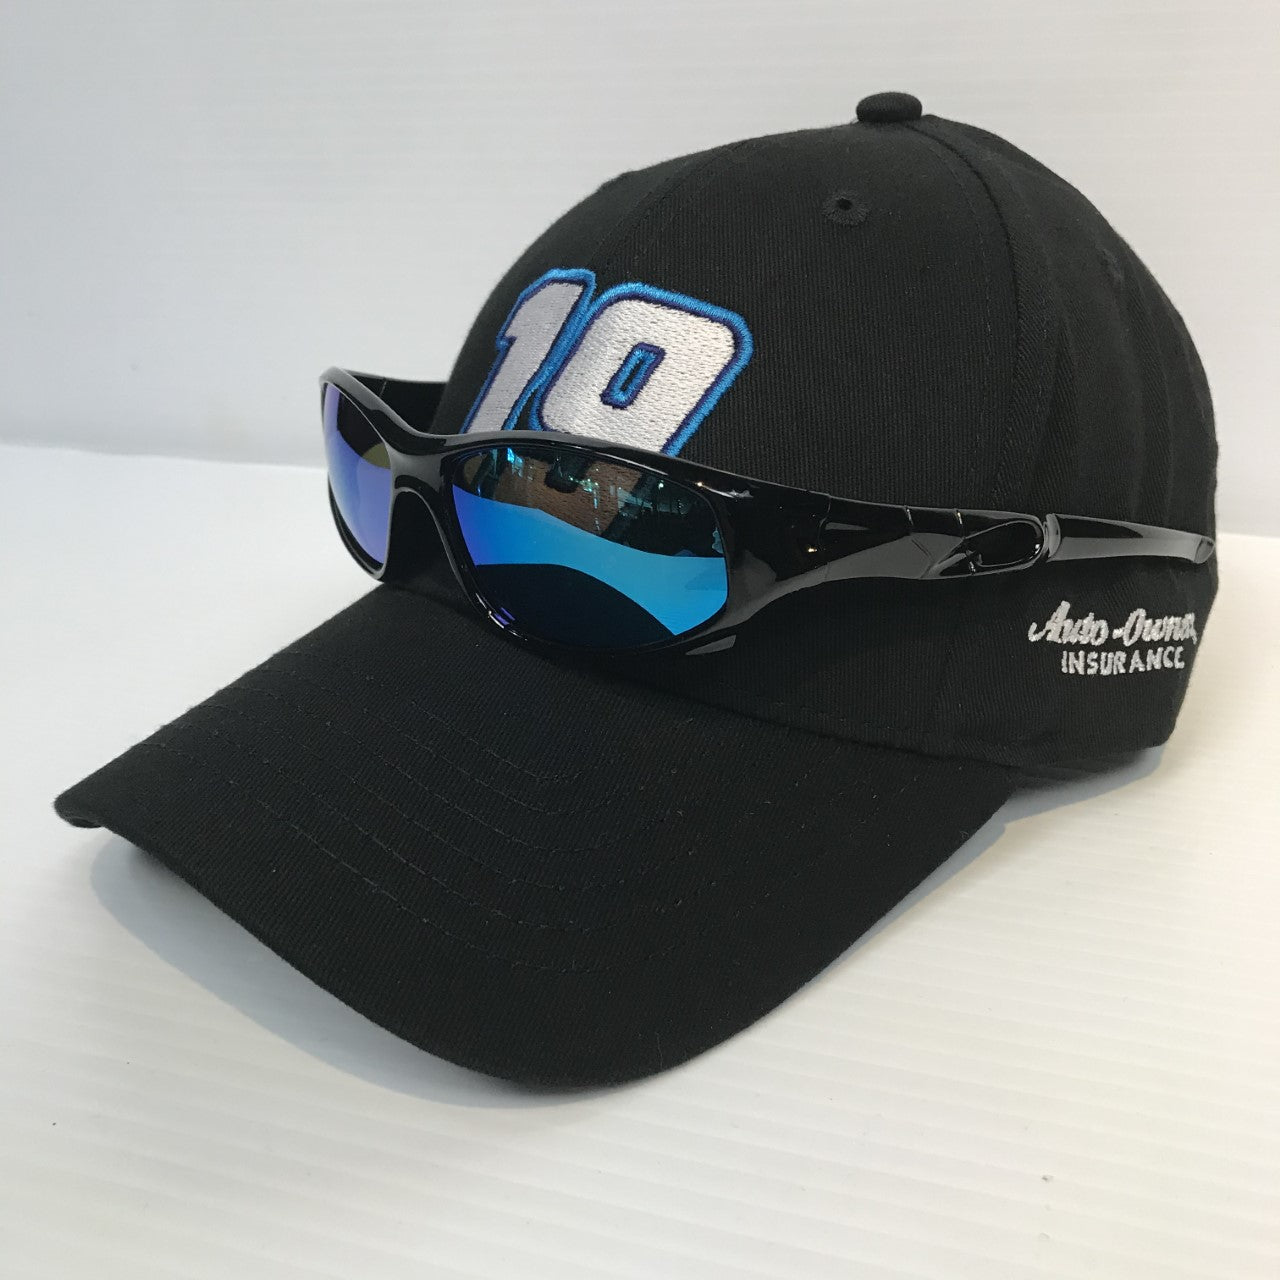 #19 Martin Truex Jr. 500th Start Youth Hat / Sunglasses Combo